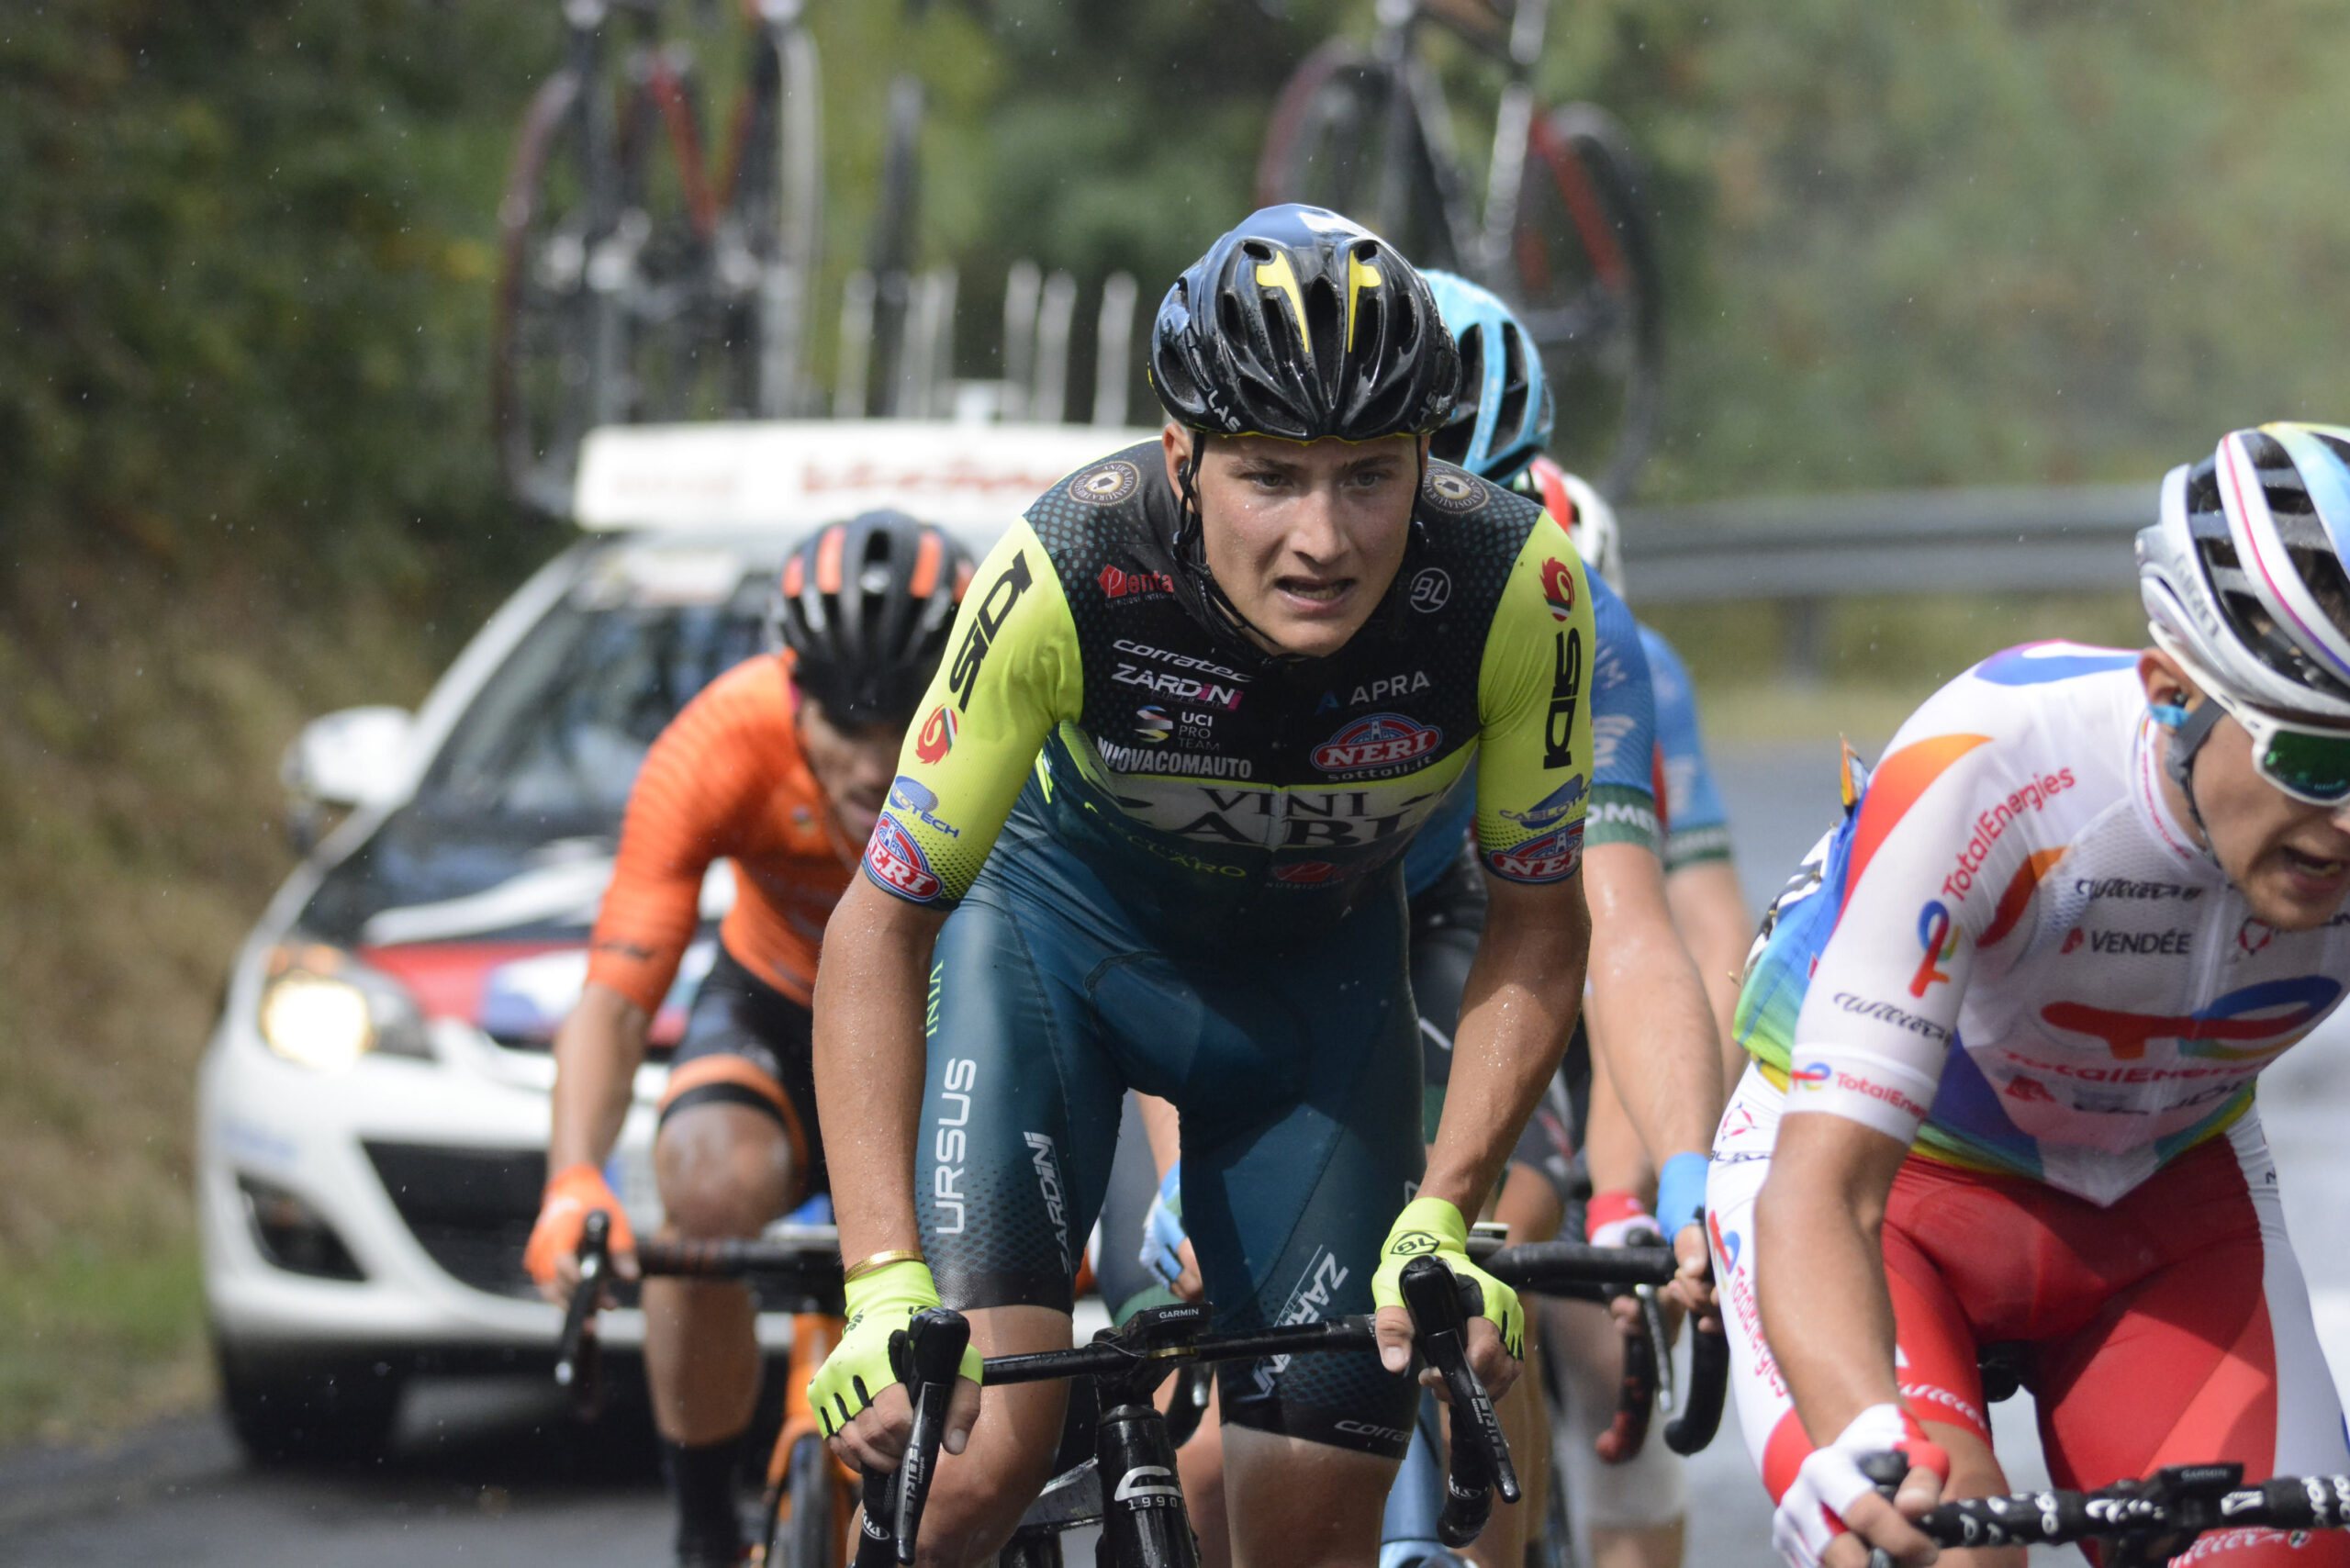 MEMORIAL PANTANI: COURAGE AND BAD LUCK IN CESENATICO